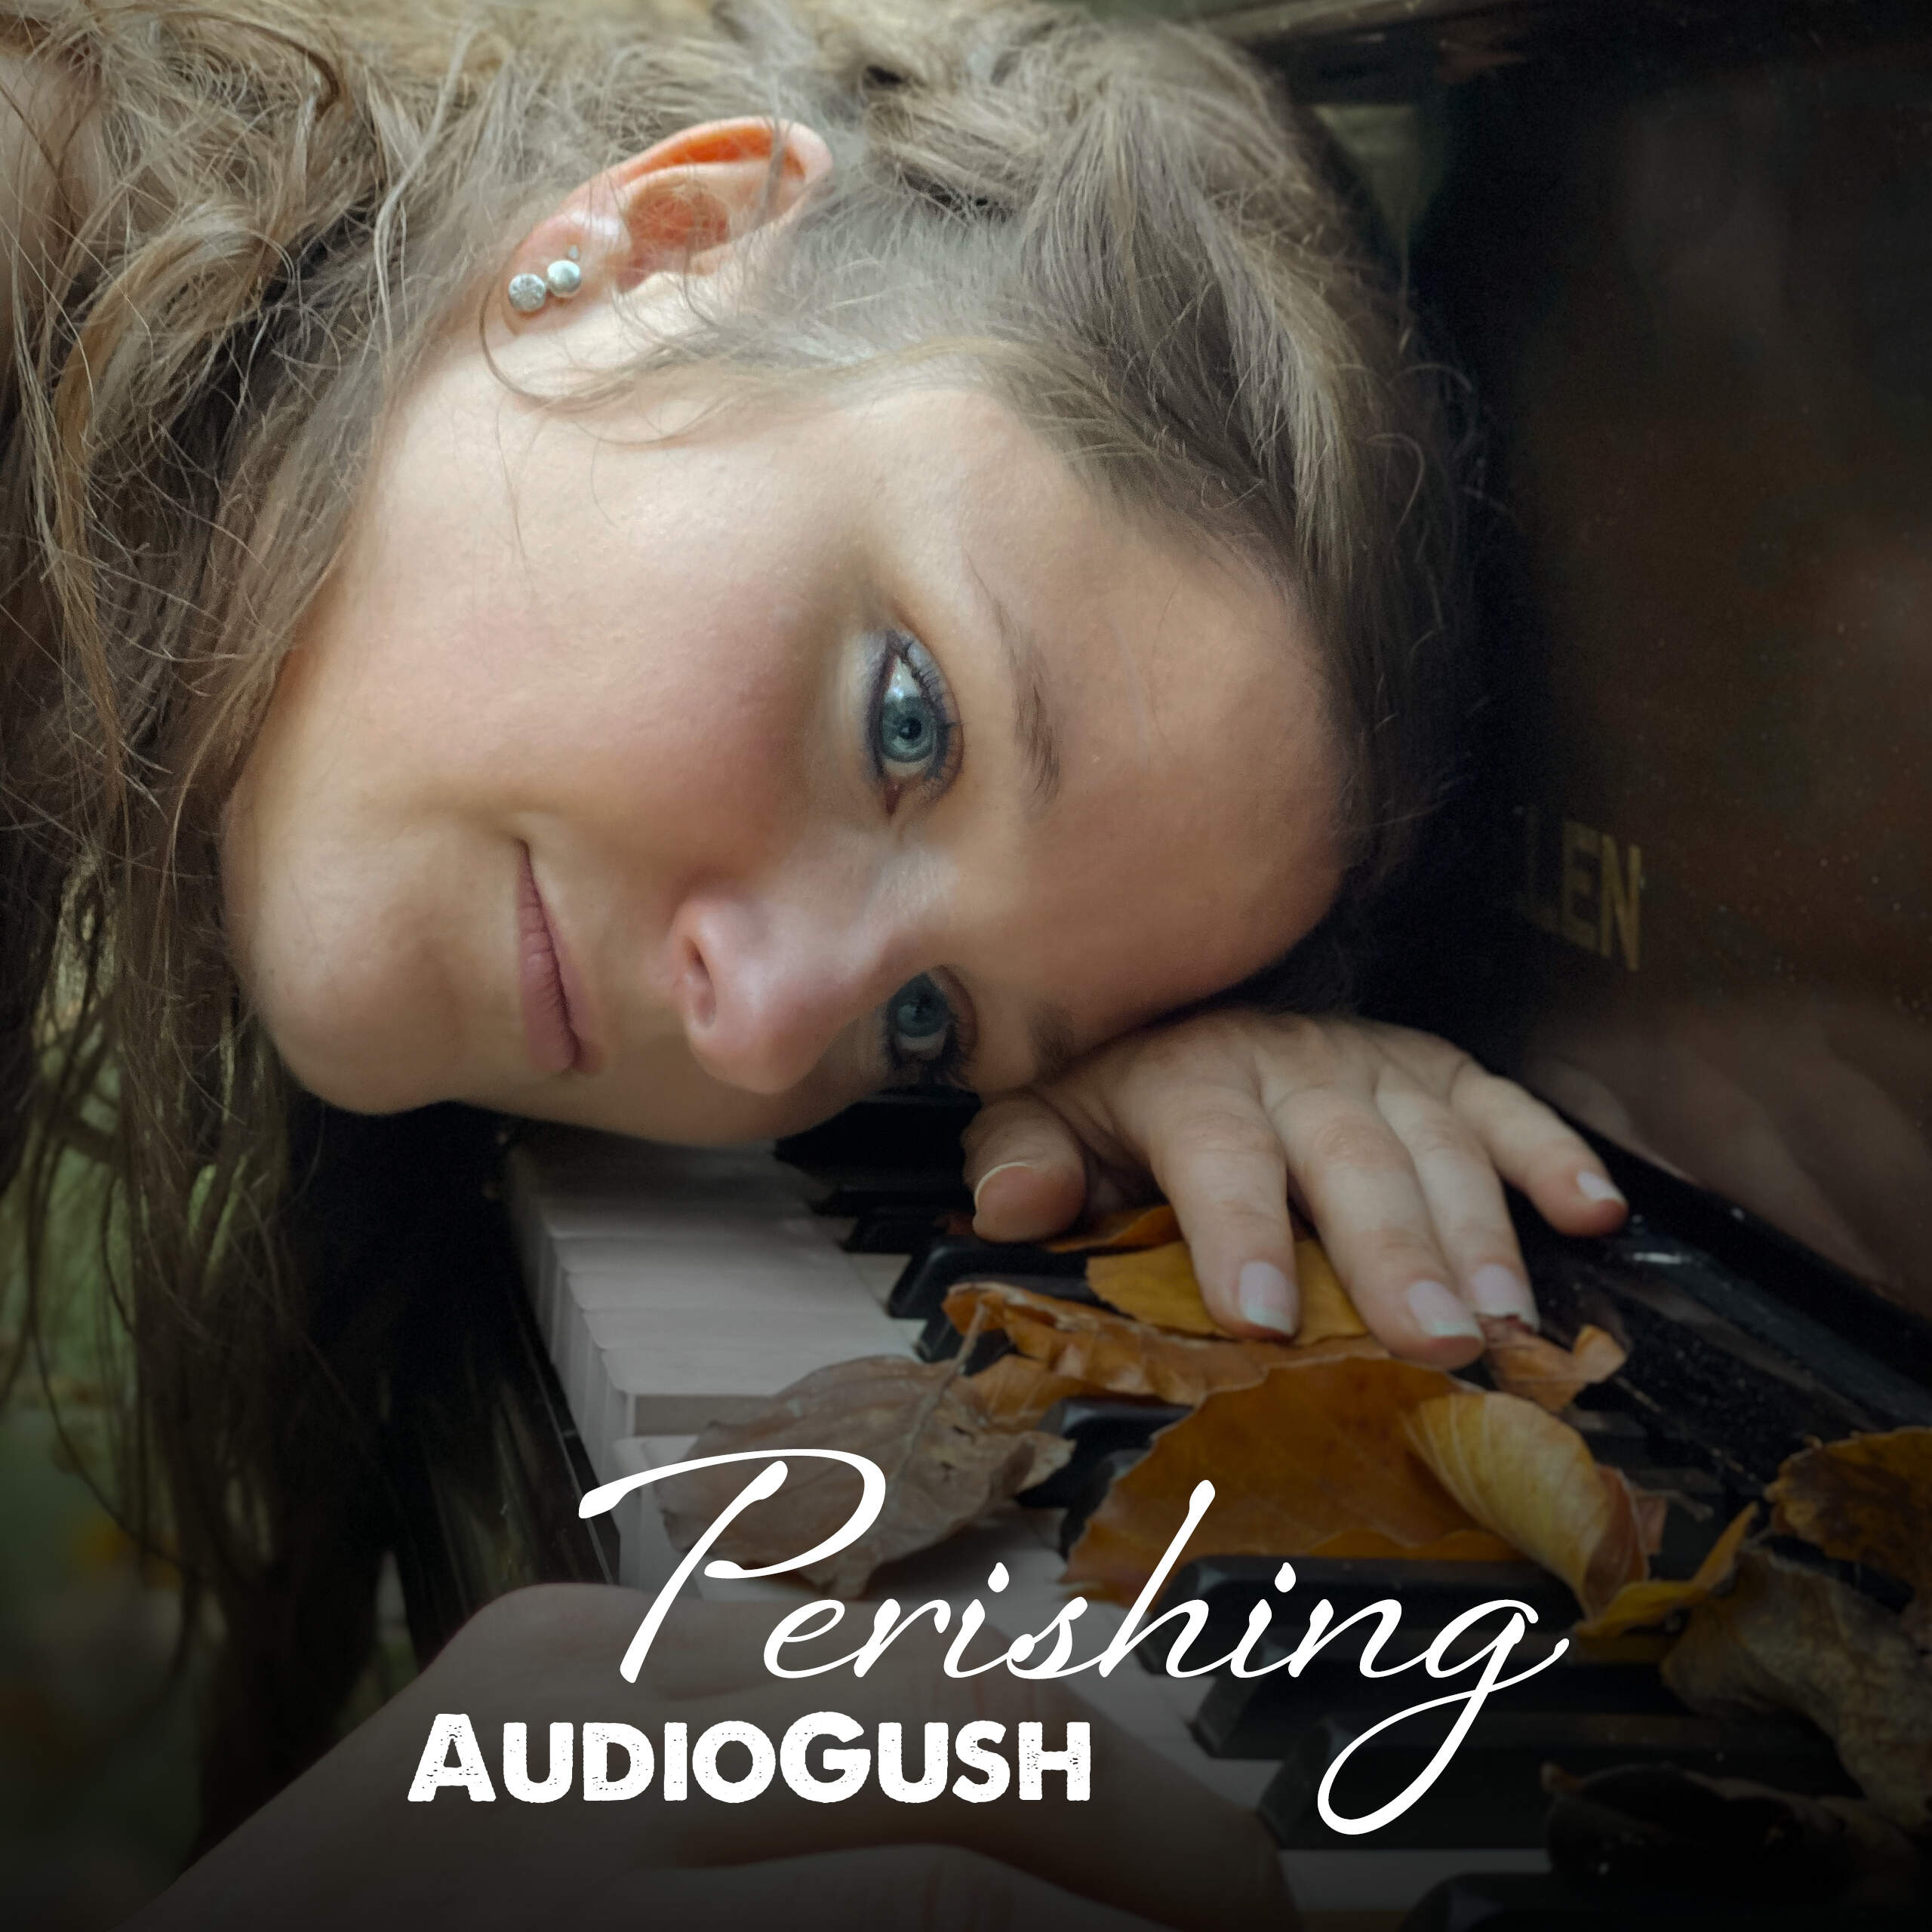 AudioGush - Perishing